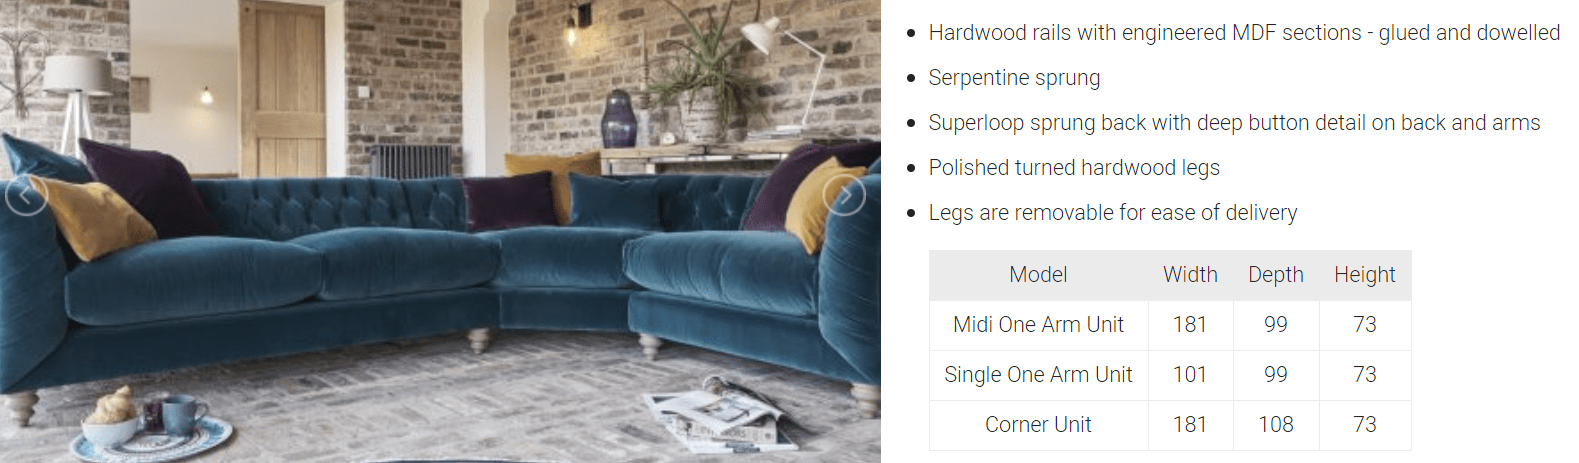 TRUFFLE CORNER SOFA SPEC SHEET